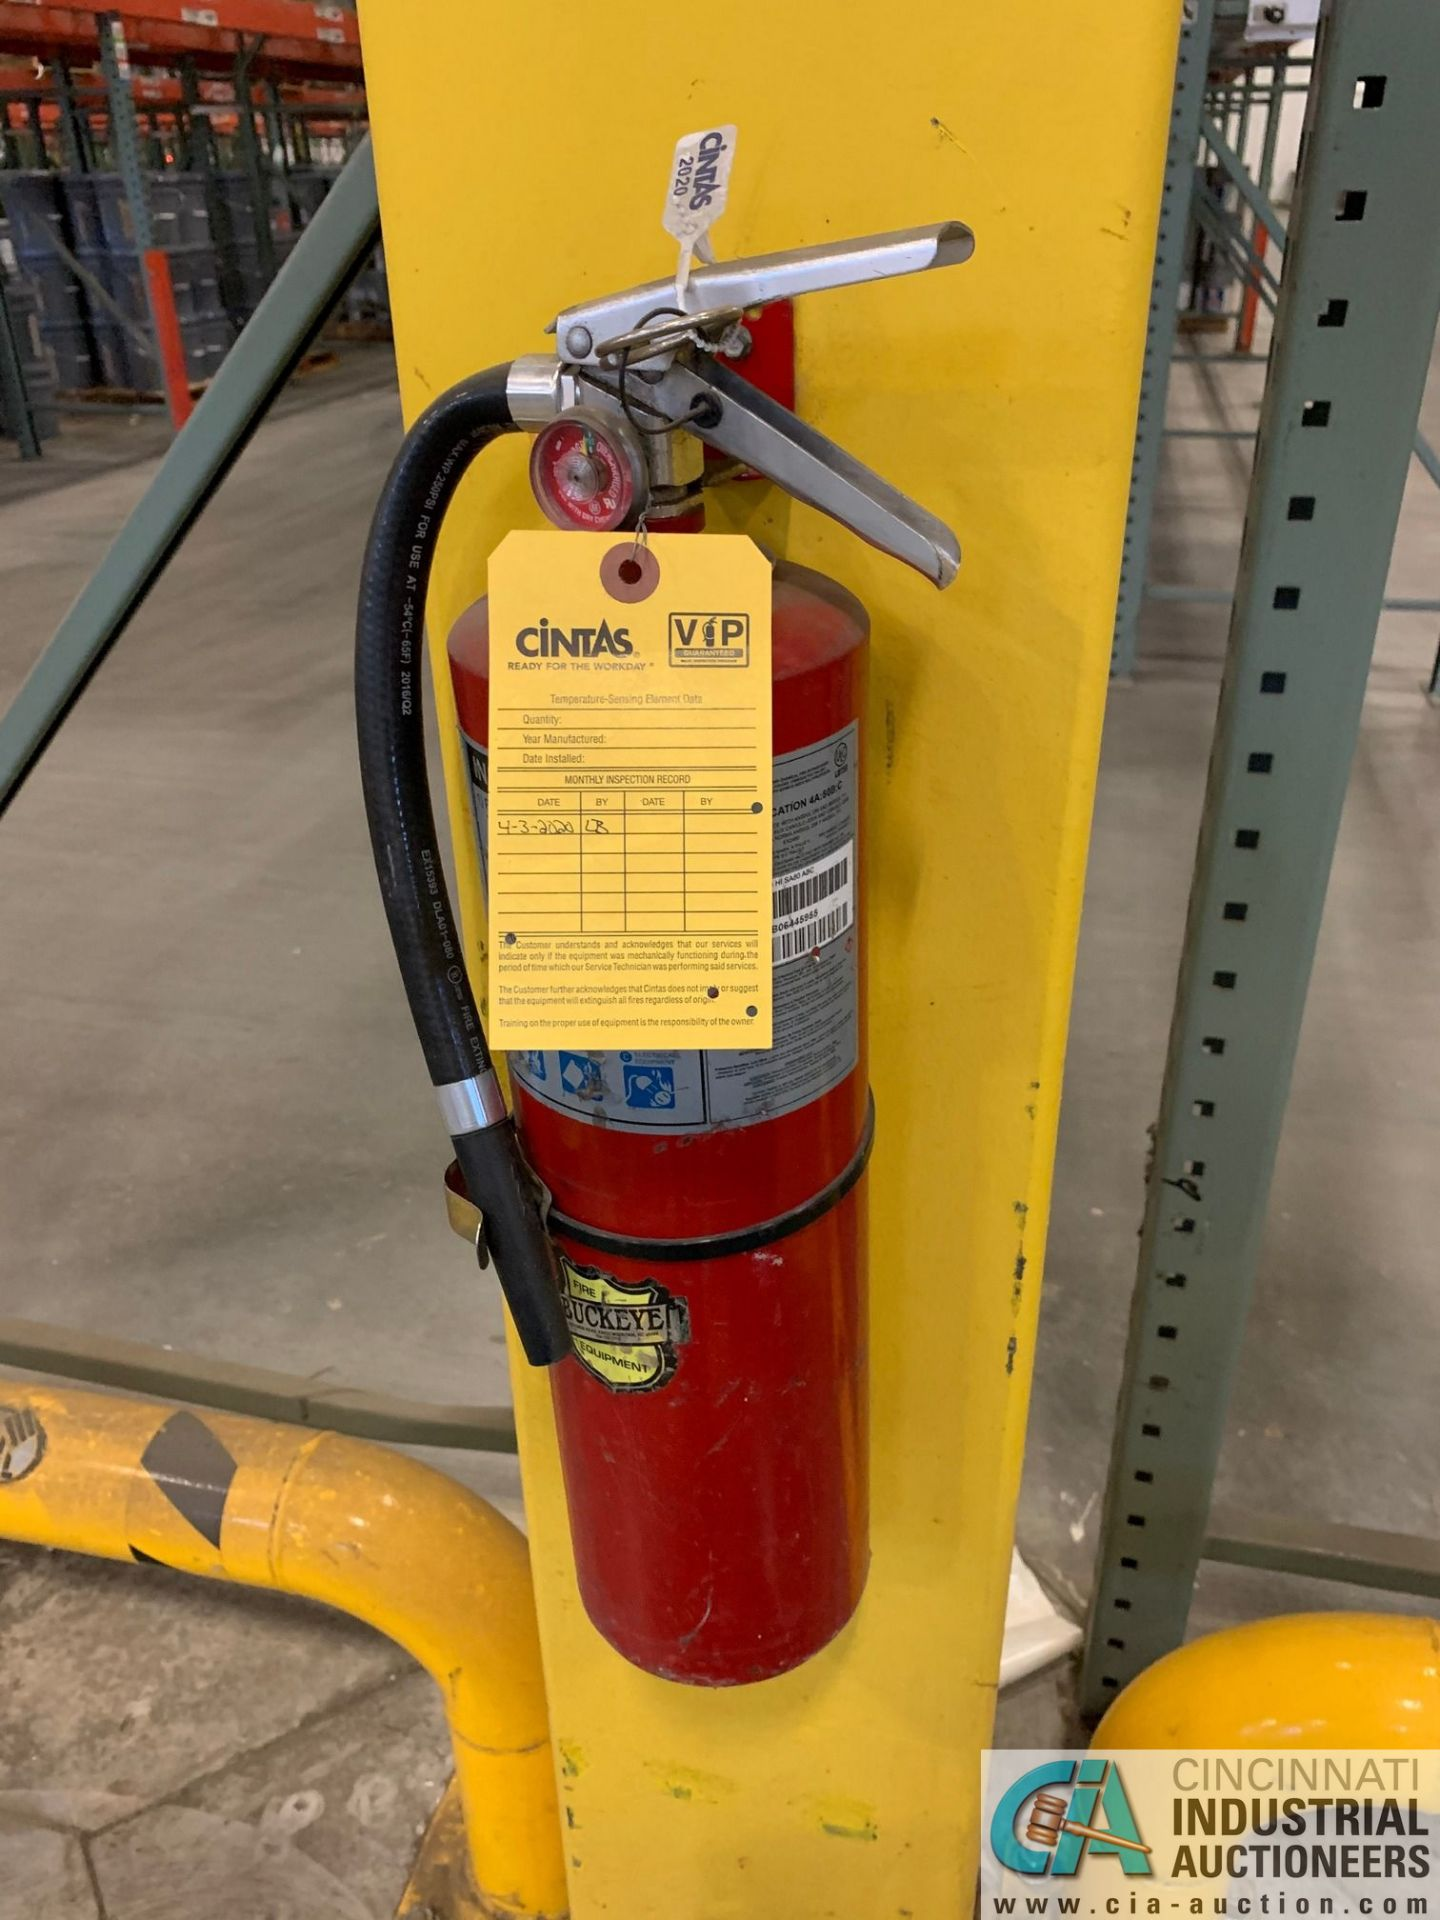 APPROX. (50) FIRE EXTINGUISHER (5400 OAKLEY INDUSTRIAL BLVD., FAIRBURN, GA 30213) - Image 2 of 5